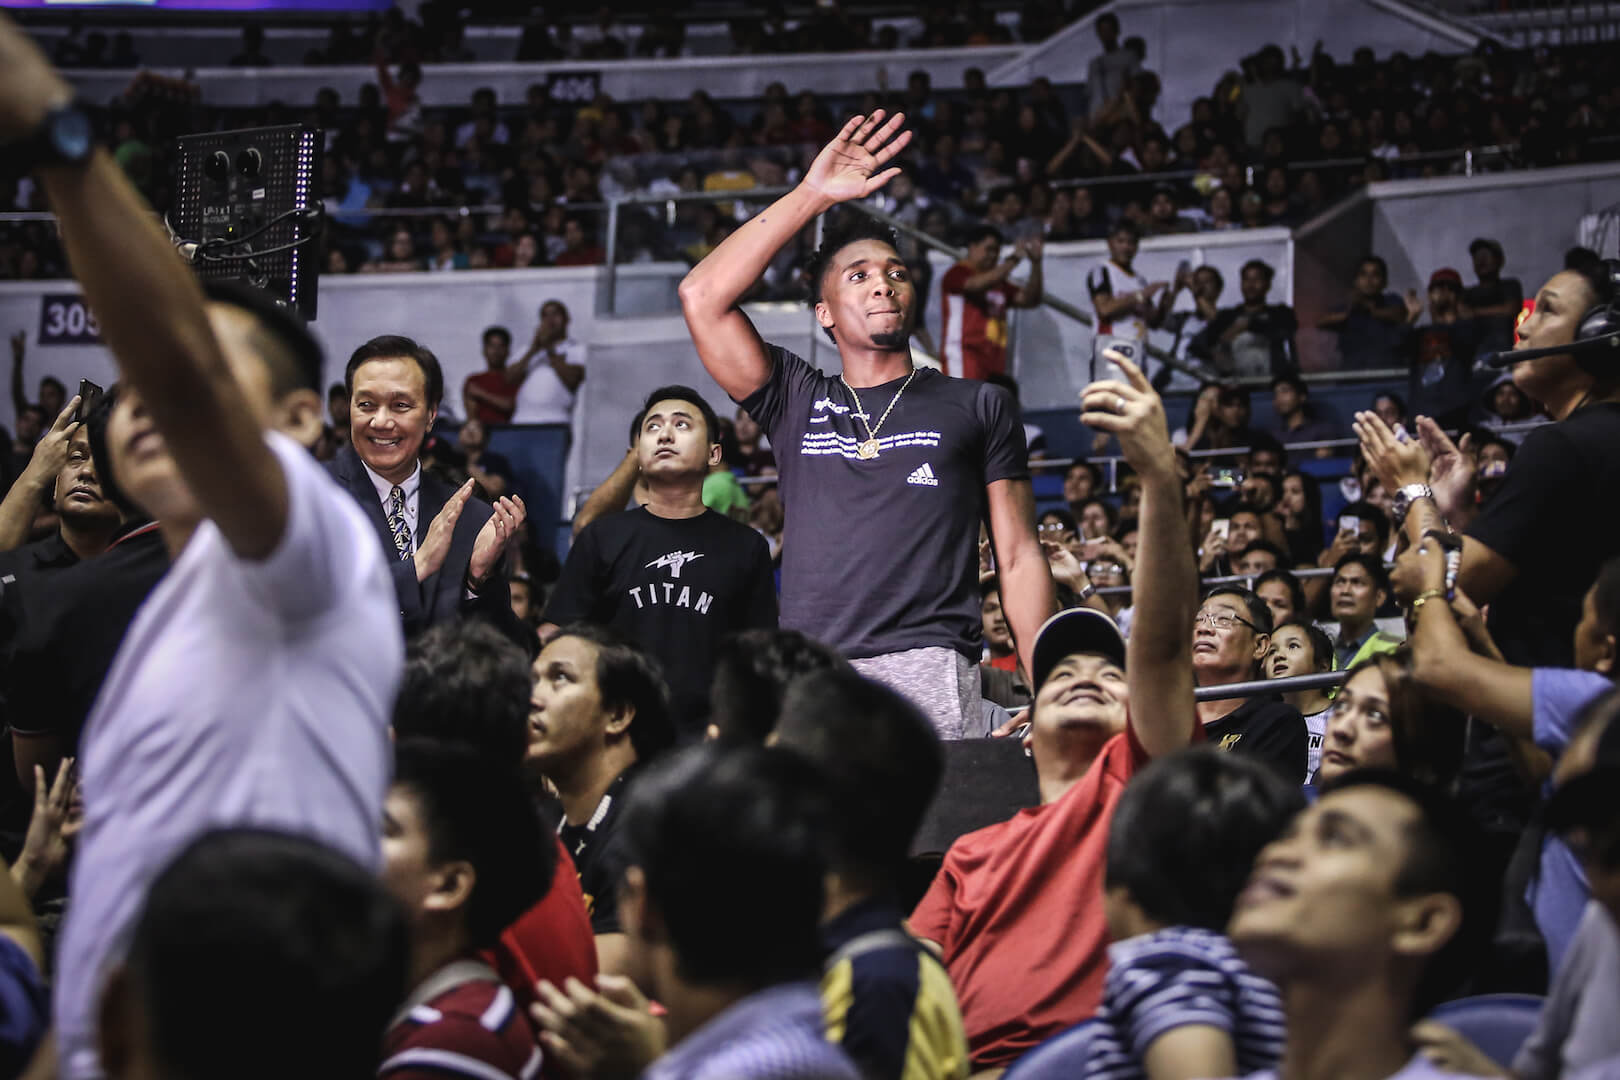 LOOK: Donovan Mitchell excites the crowd in his tour of Manila